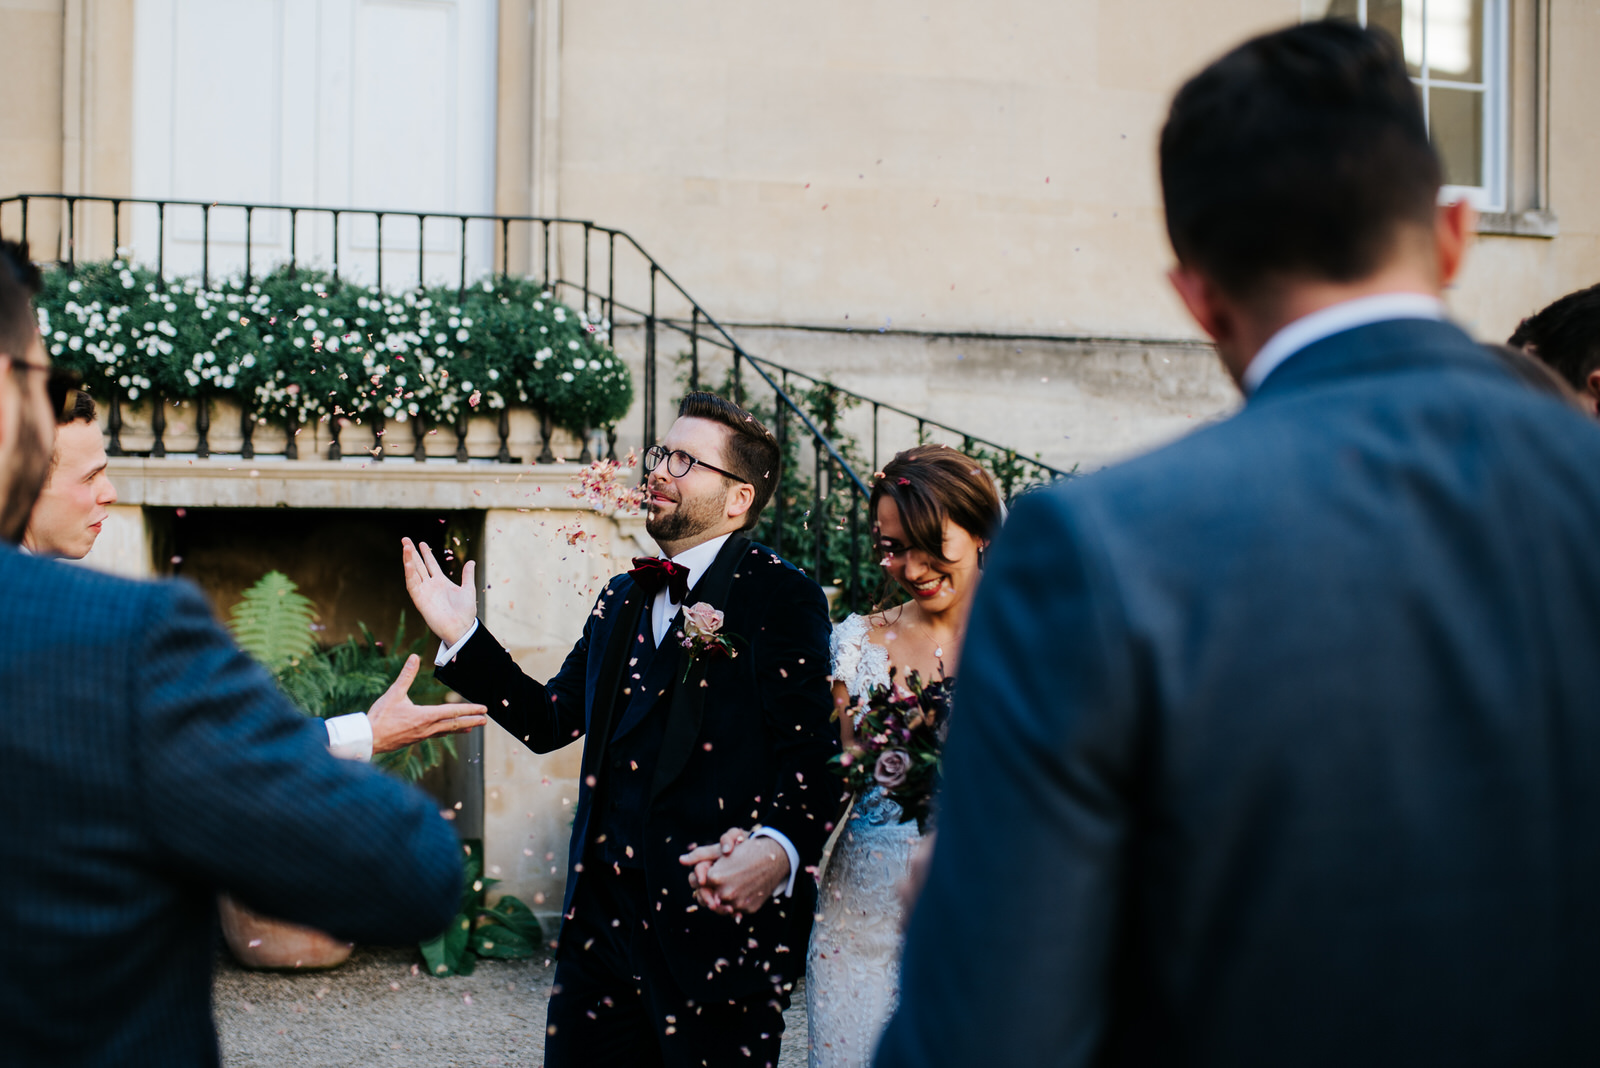 Guests throw confetti as couple walks in front of them